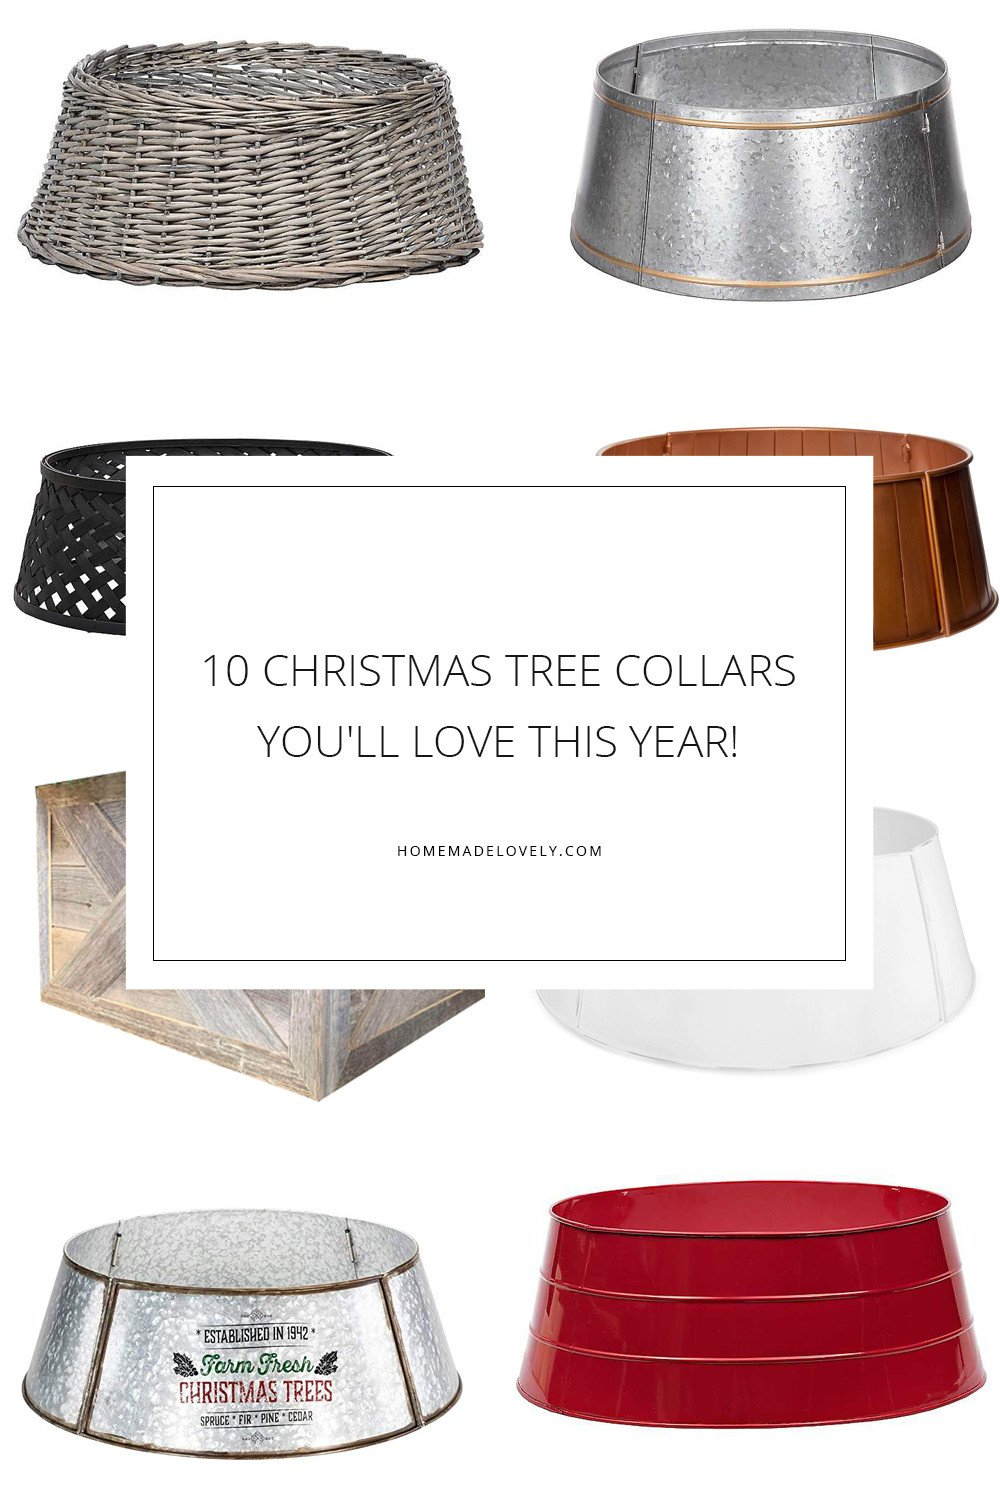 10 Christmas Tree Collars